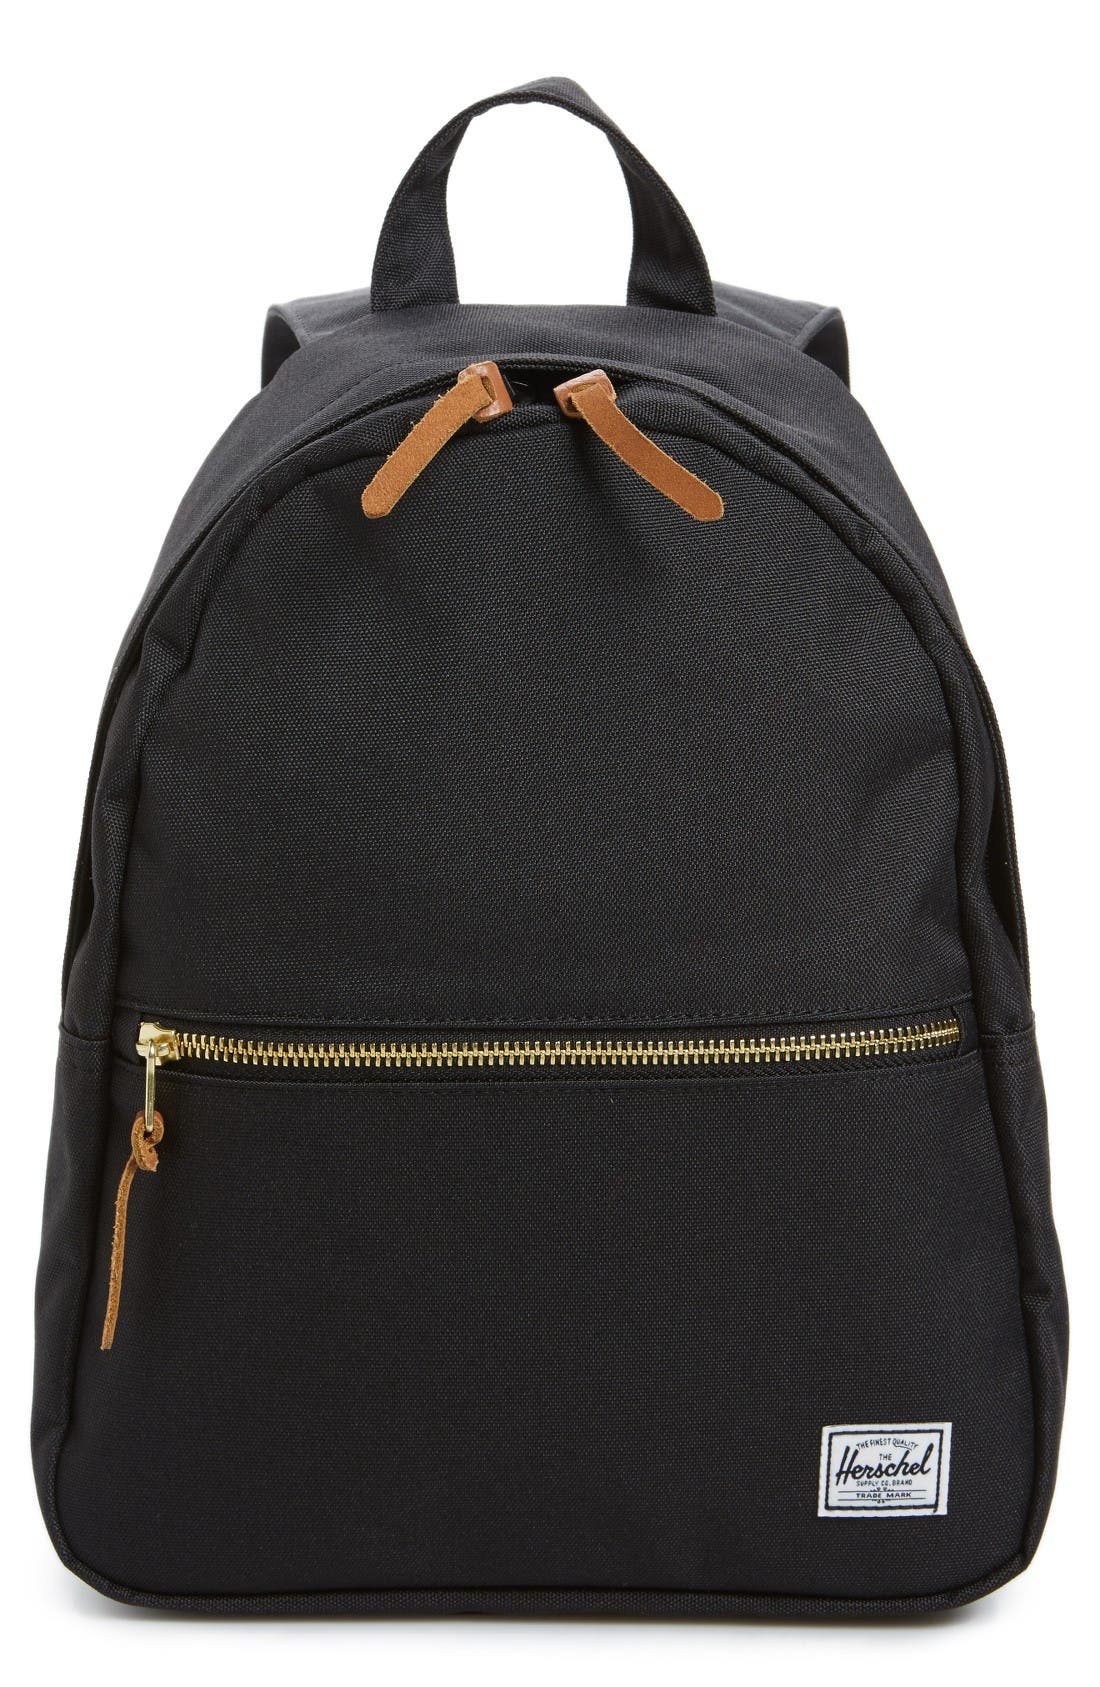 Alternate Image 1 Selected - Herschel Supply Co. 'Town' Backpack